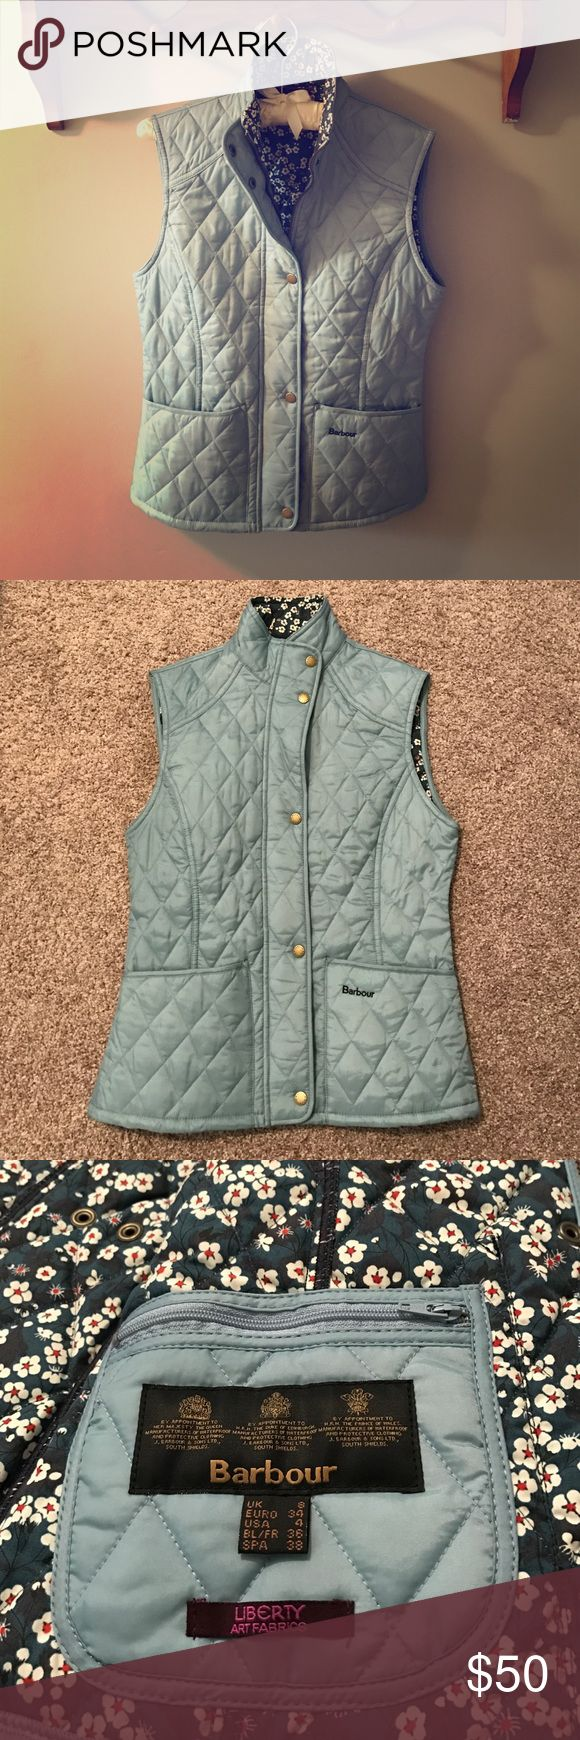 Barbour blue quilted vest with ditsy floral lining Really cute limited edition Barbour vest. Liberty of London floral lining. Light blue quilted nylon exterior. Cotton interior. Barbour Jackets & Coats Vests